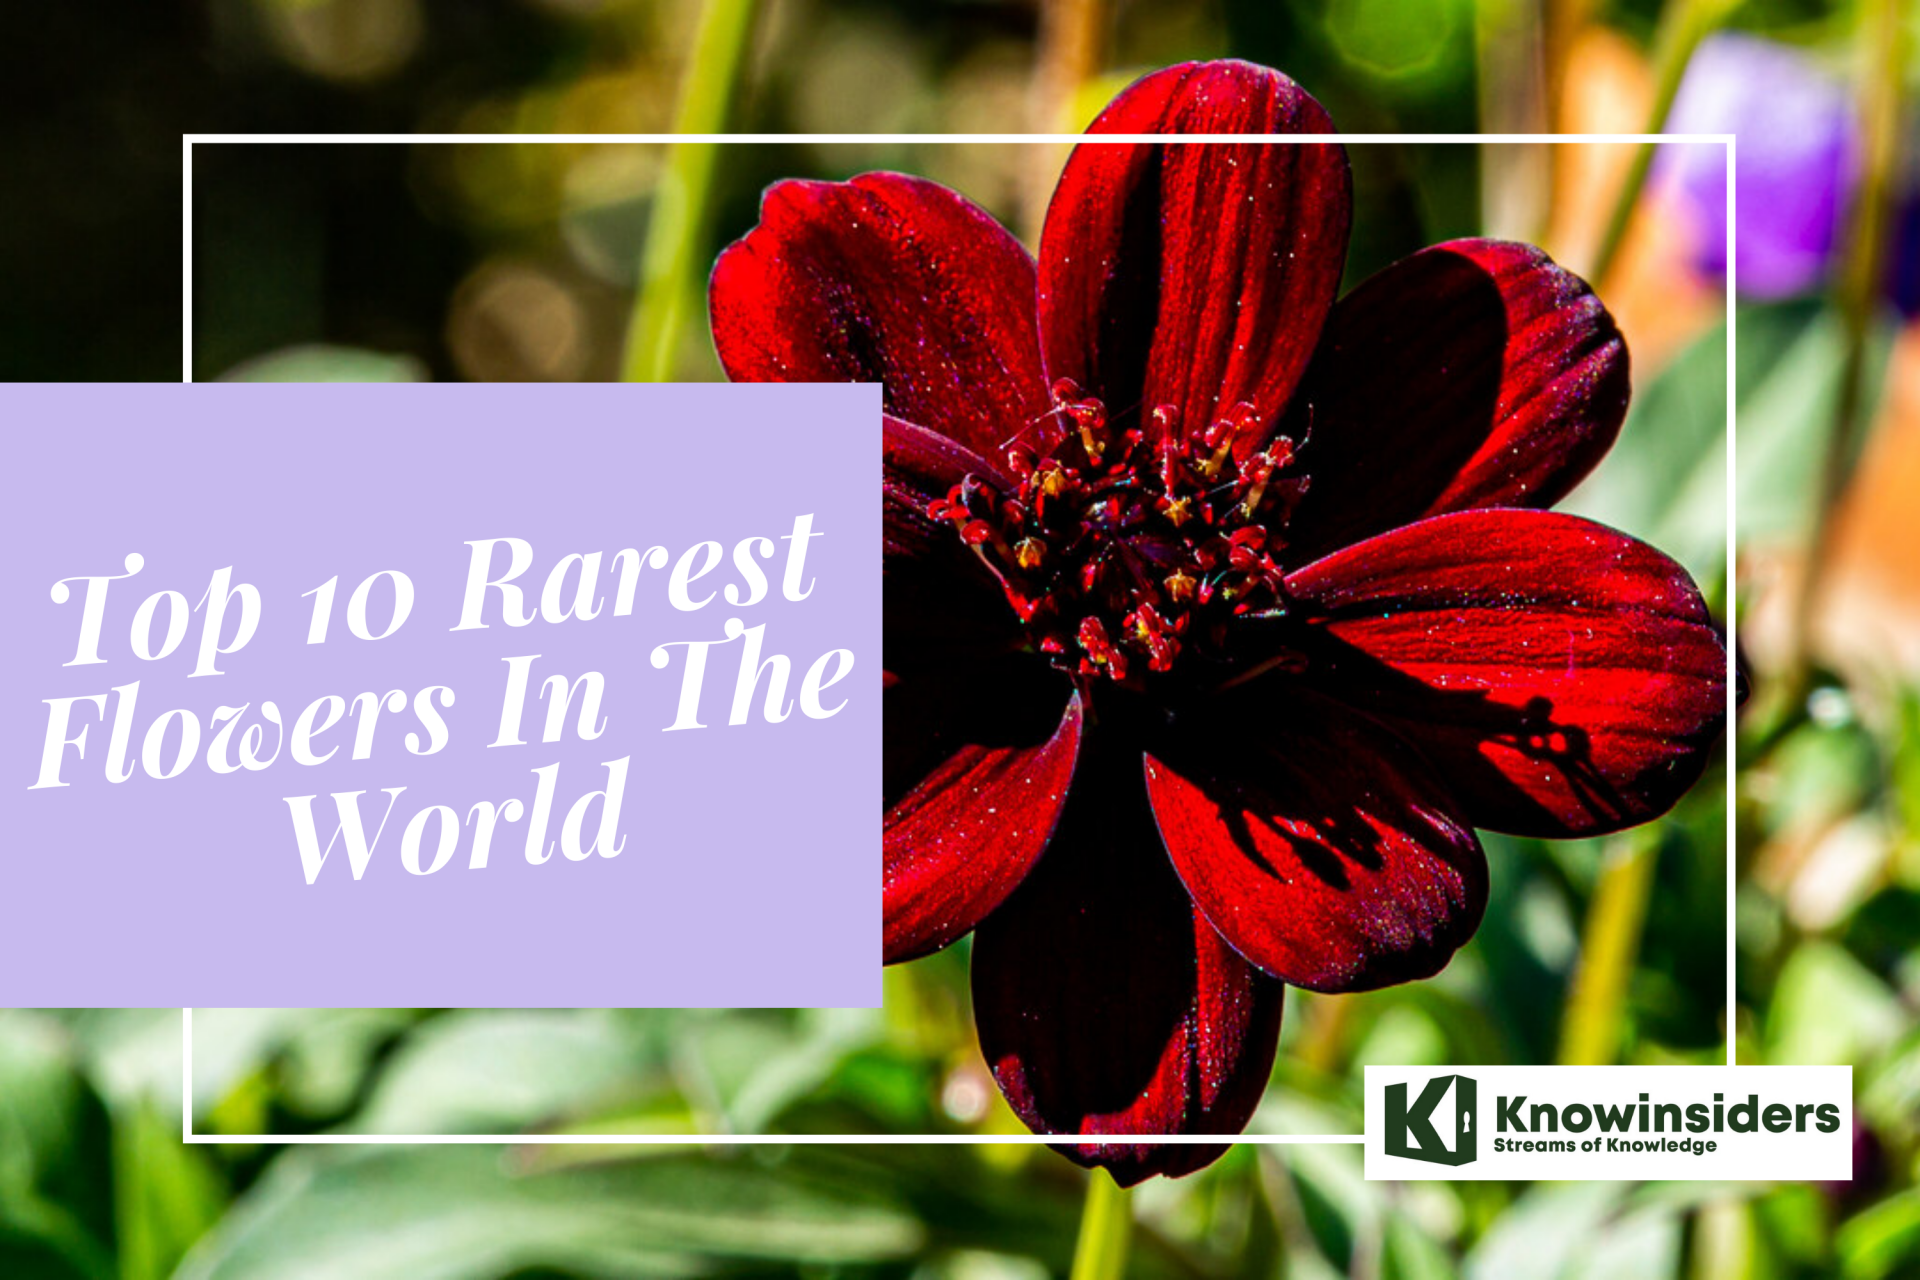 10 Rarest Flowers In The World